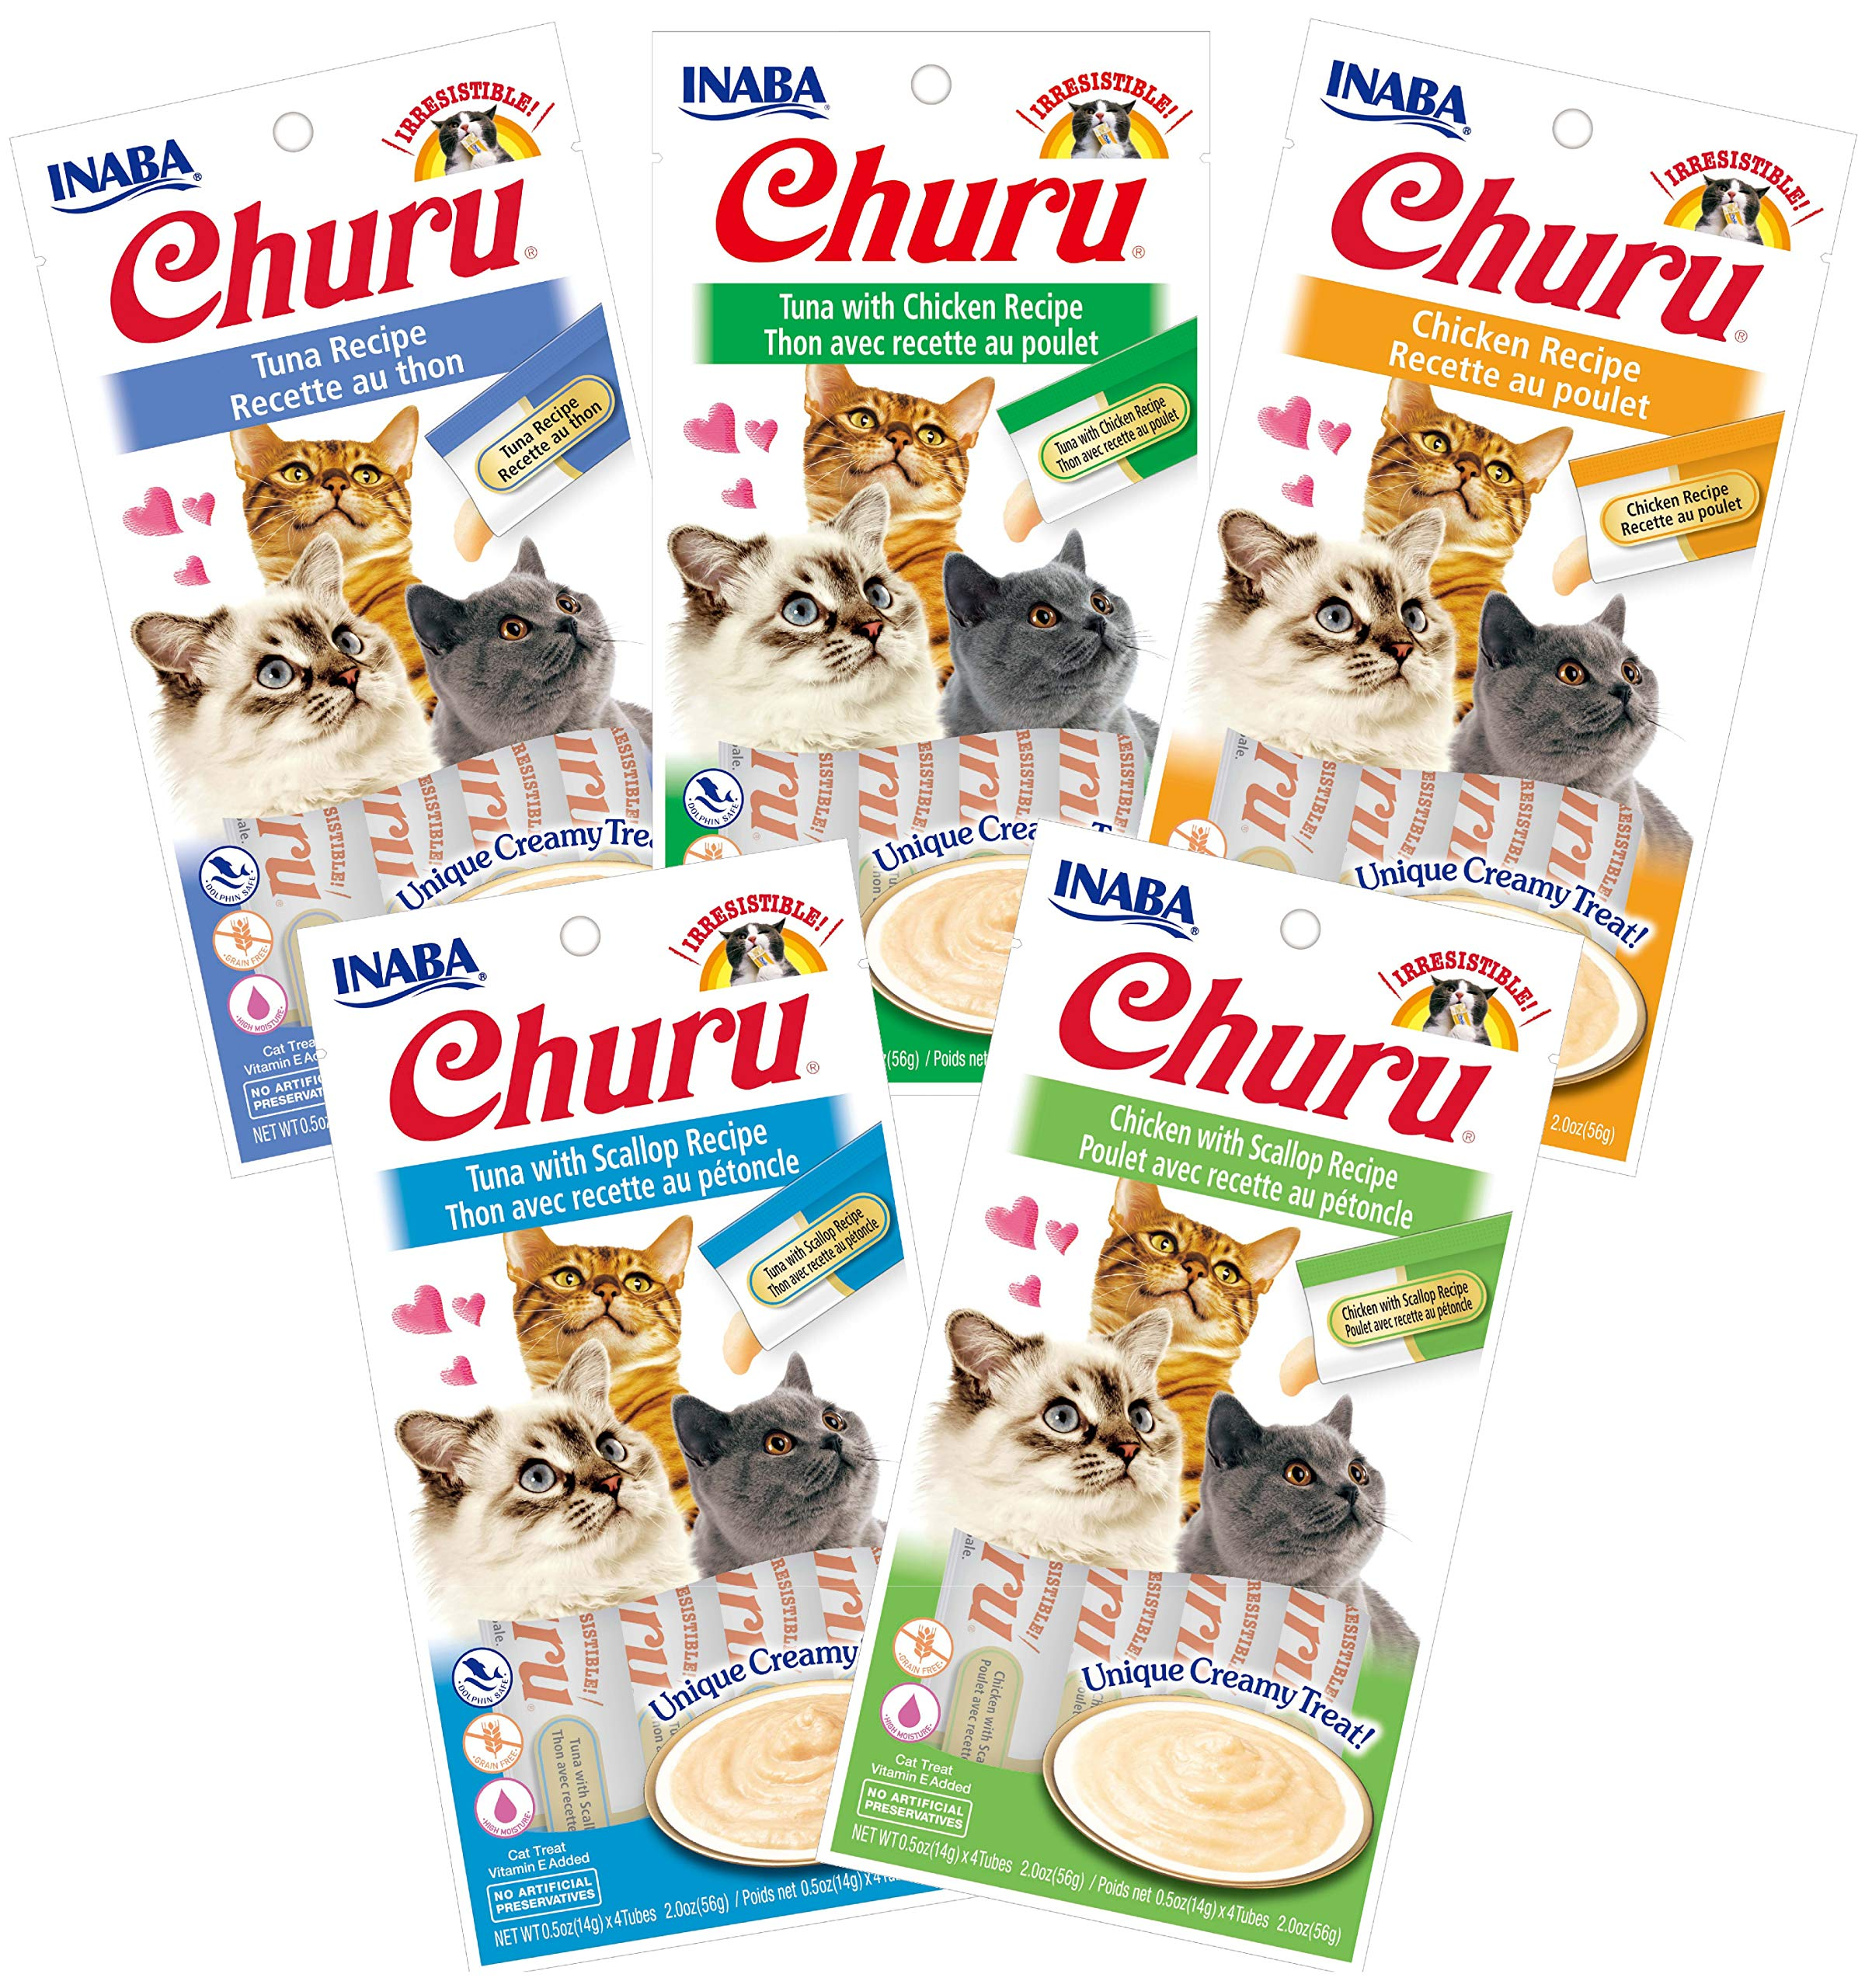 INABA Churu Lickable Creamy Purée Cat Treats 5 Flavor Variety Pack of 20 Tubes by INABA